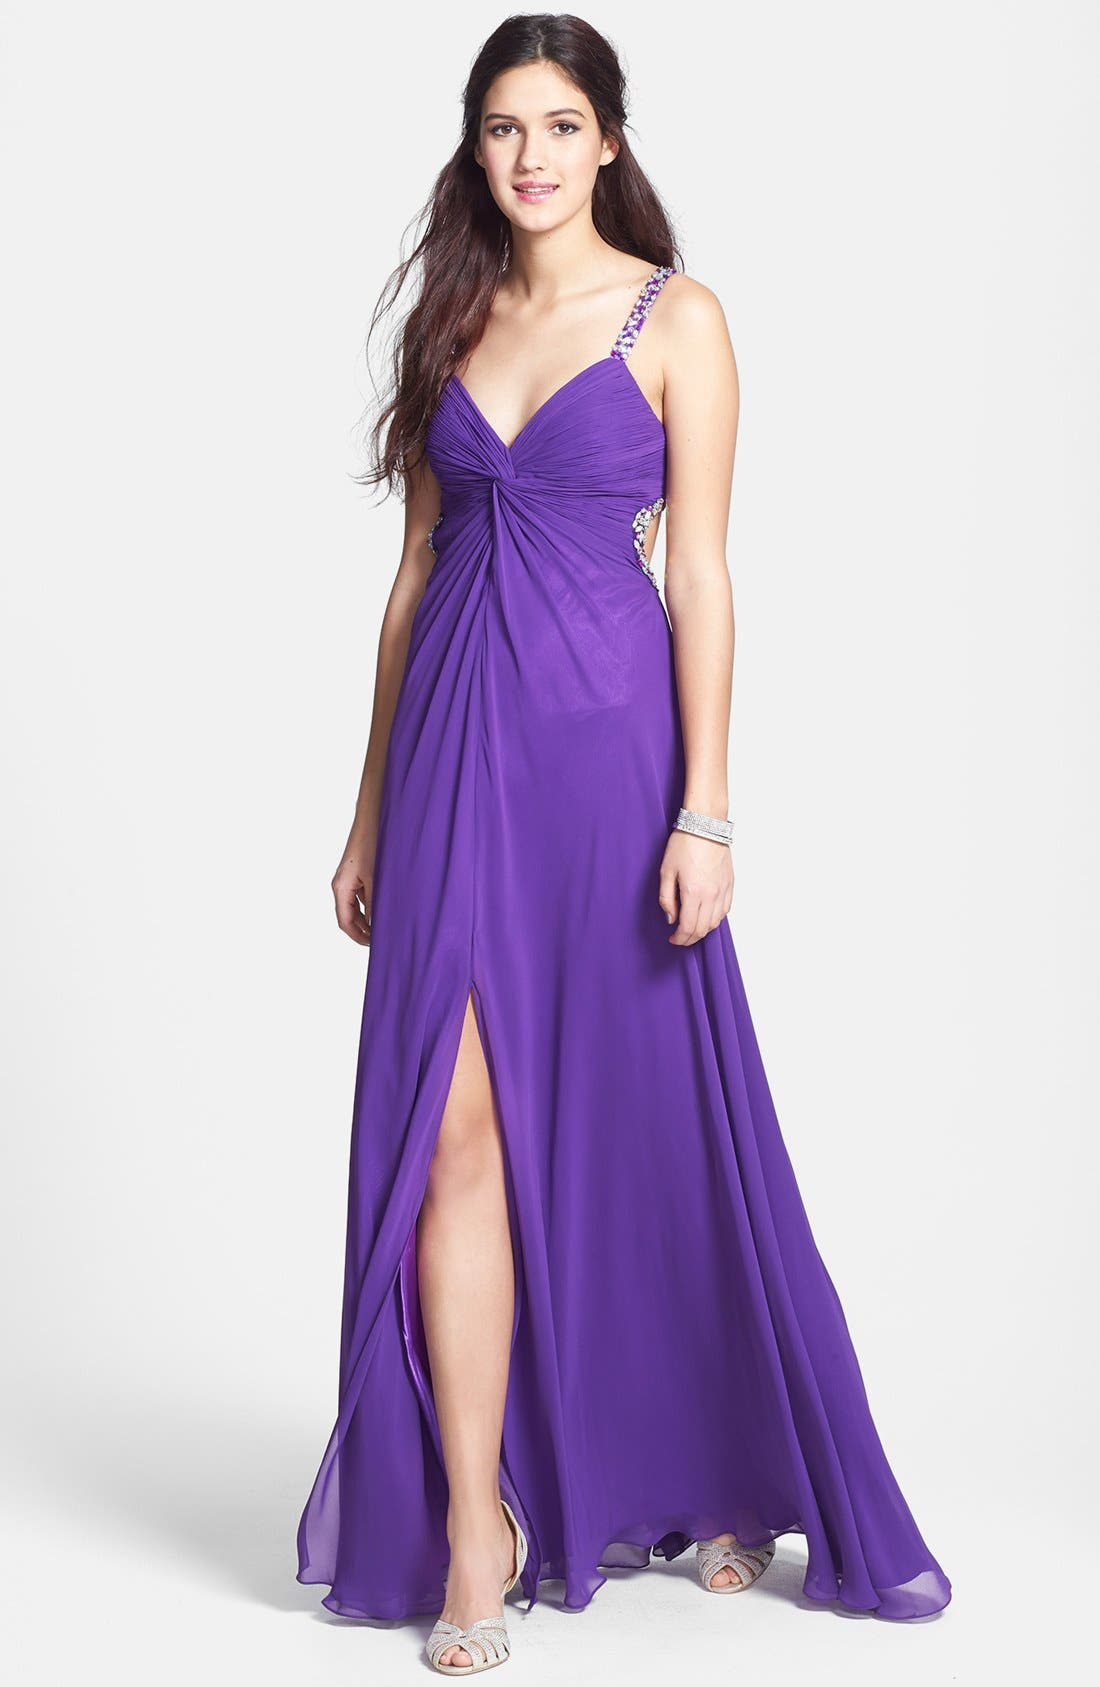 Main Image - Faviana Embellished Front Twist Chiffon Gown (Online Exclusive)